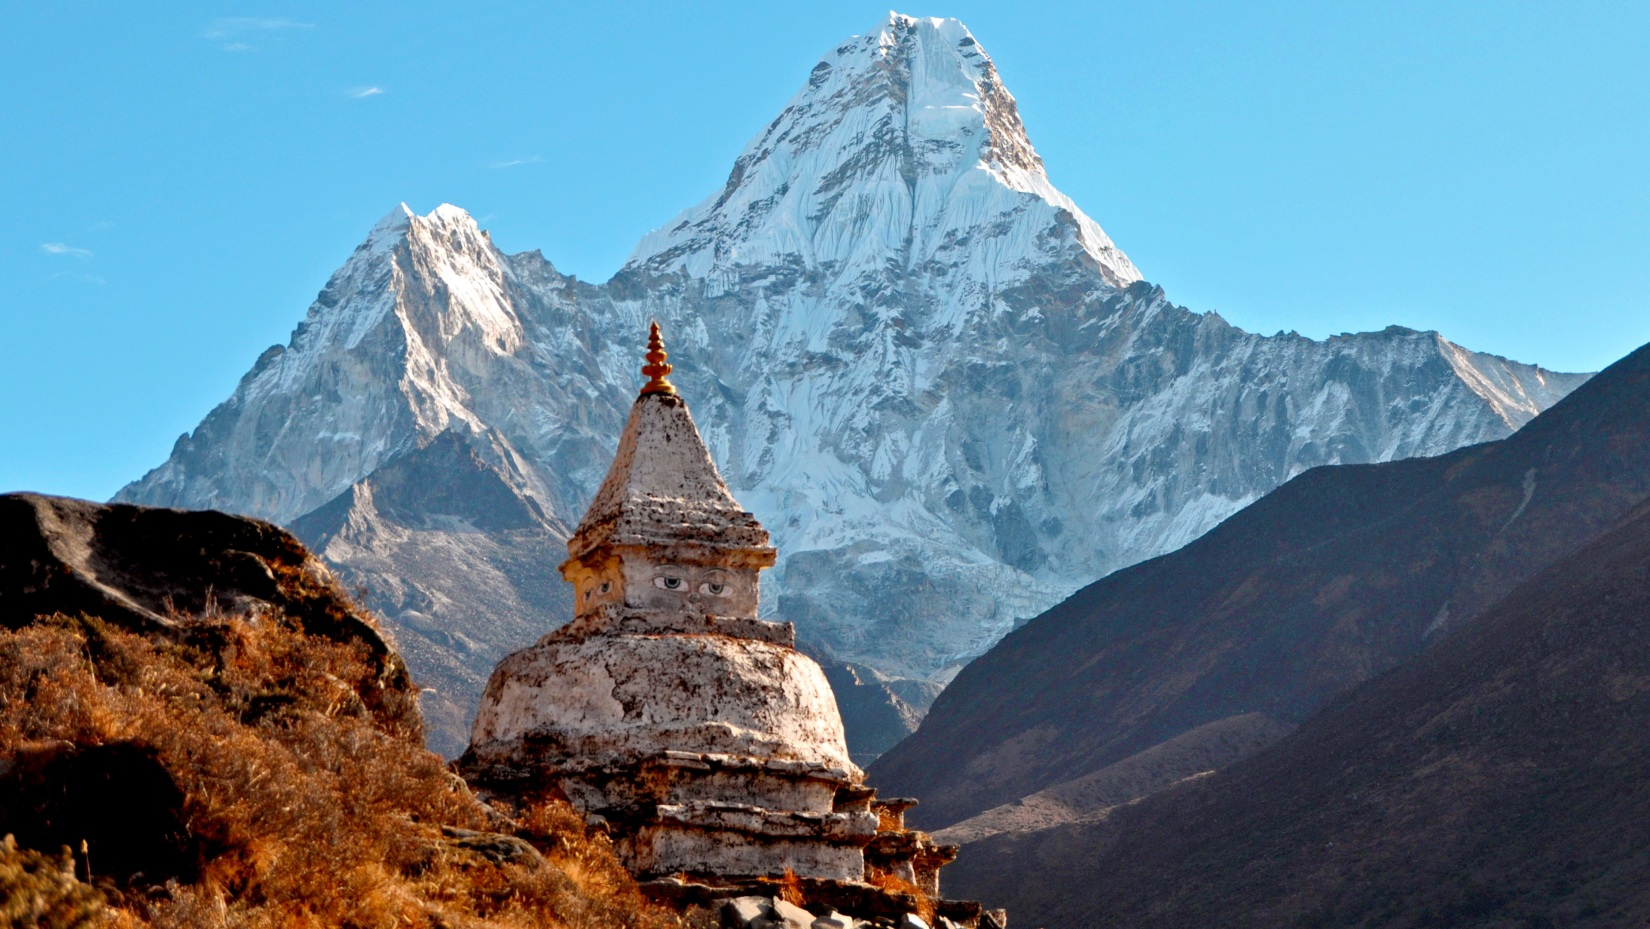 ASCENSION DE L'AMA DABLAM (6 814M)